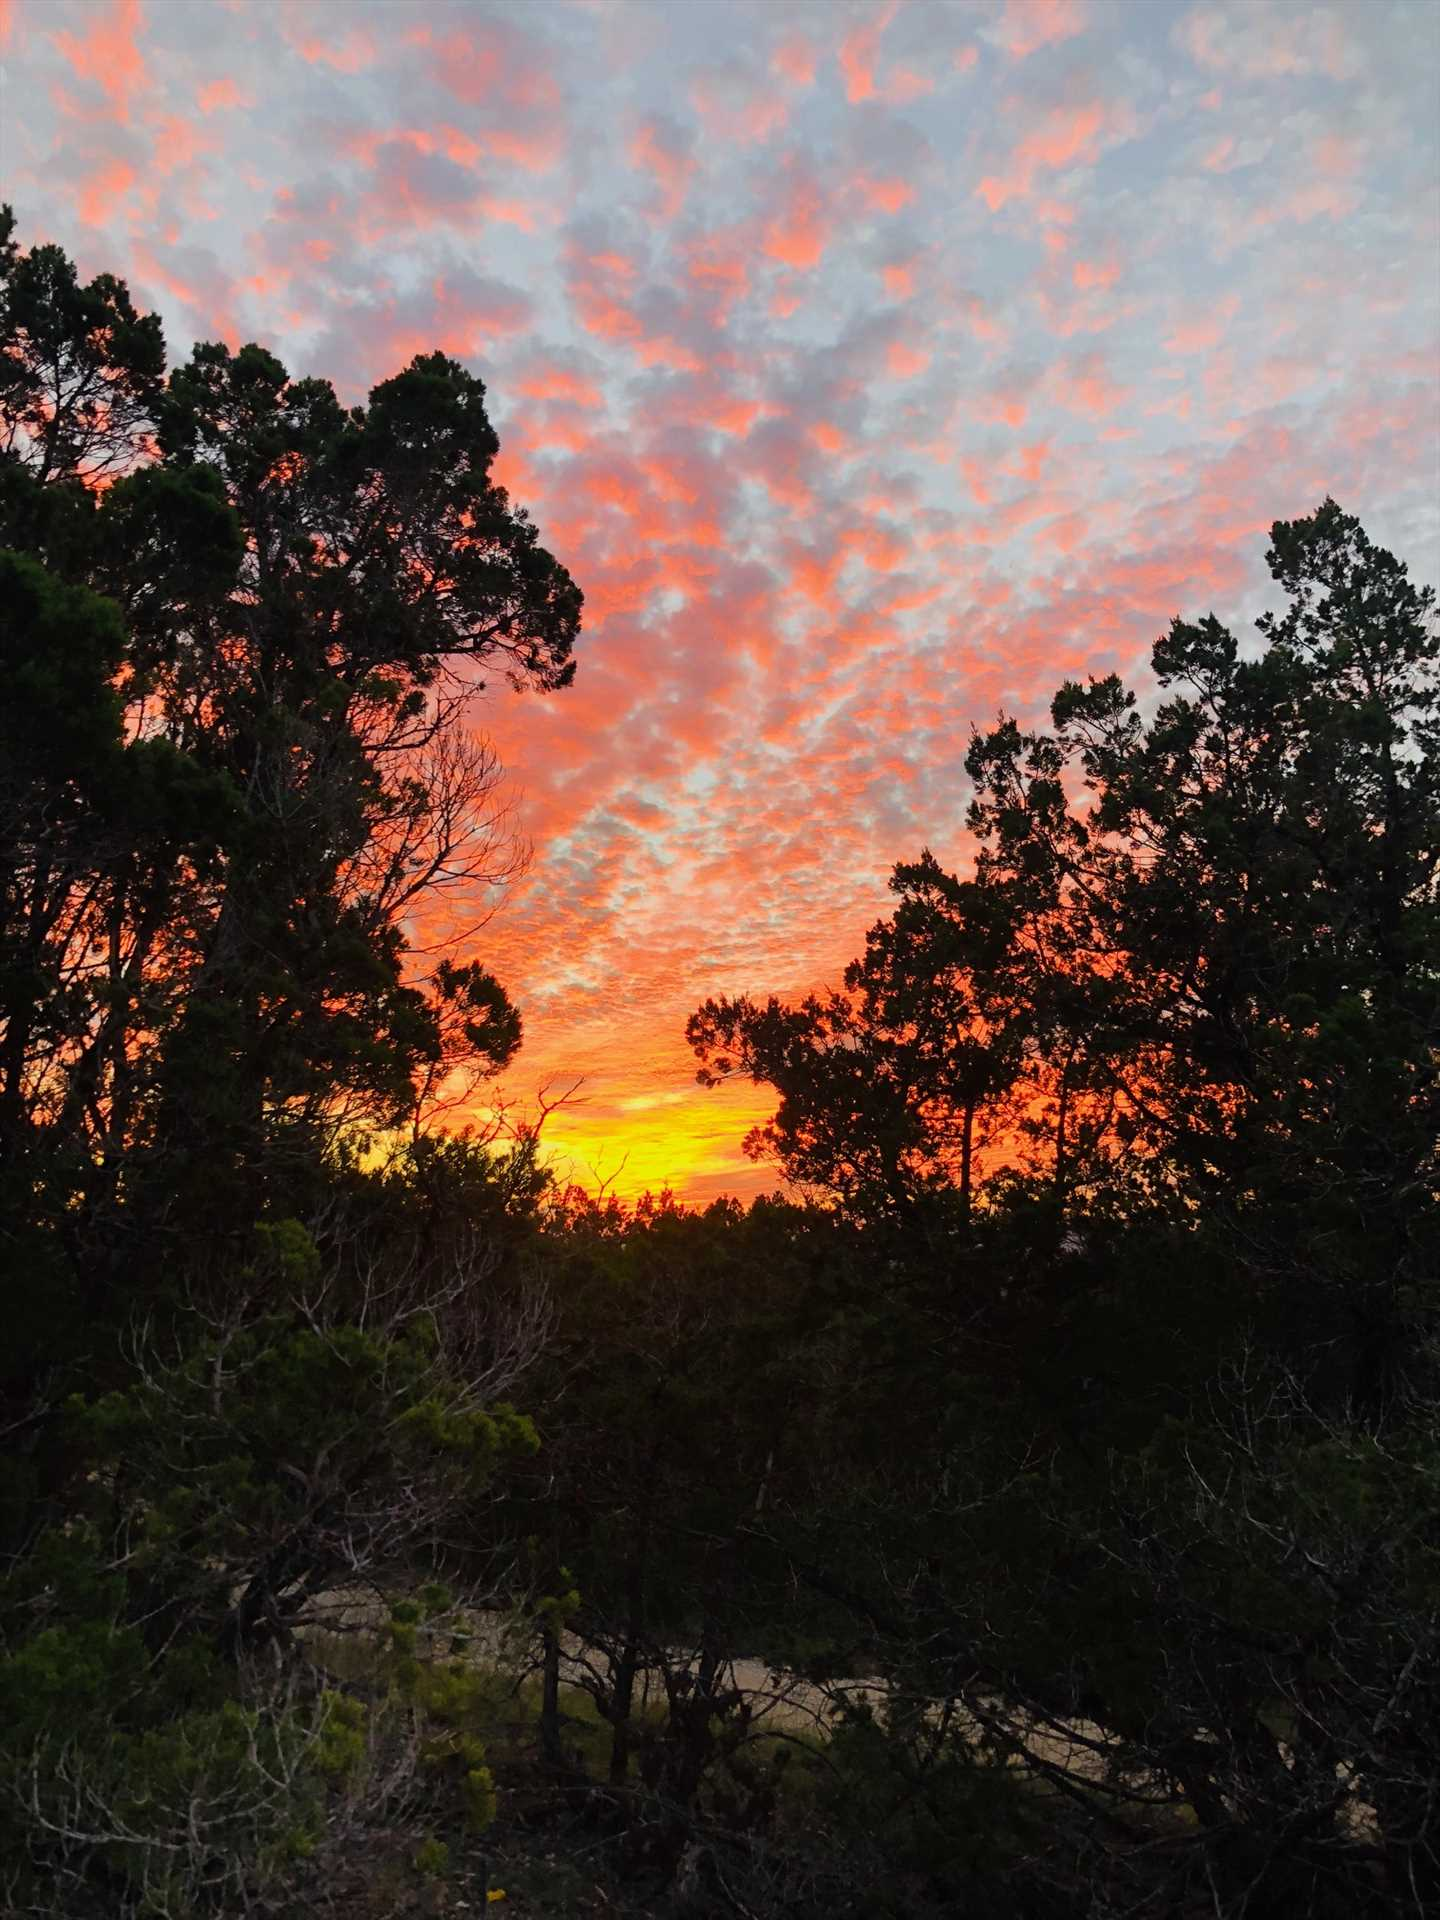 Mother Nature uses every brilliant color in her palette for the bold and bright sunsets here.